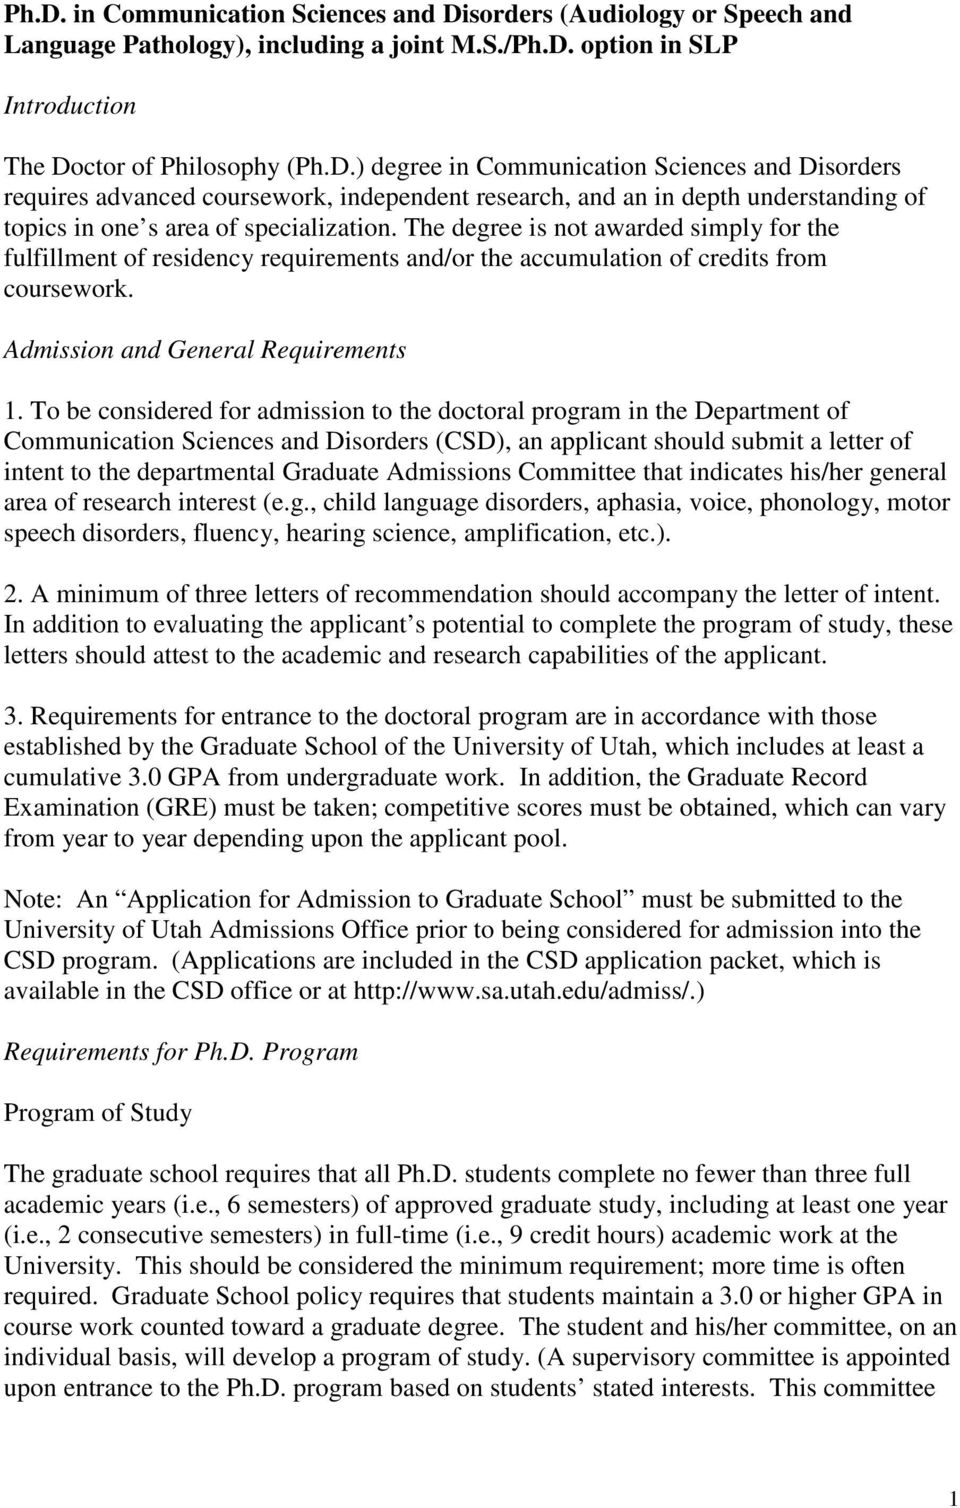 To be considered for admission to the doctoral program in the Department of Communication Sciences and Disorders (CSD), an applicant should submit a letter of intent to the departmental Graduate